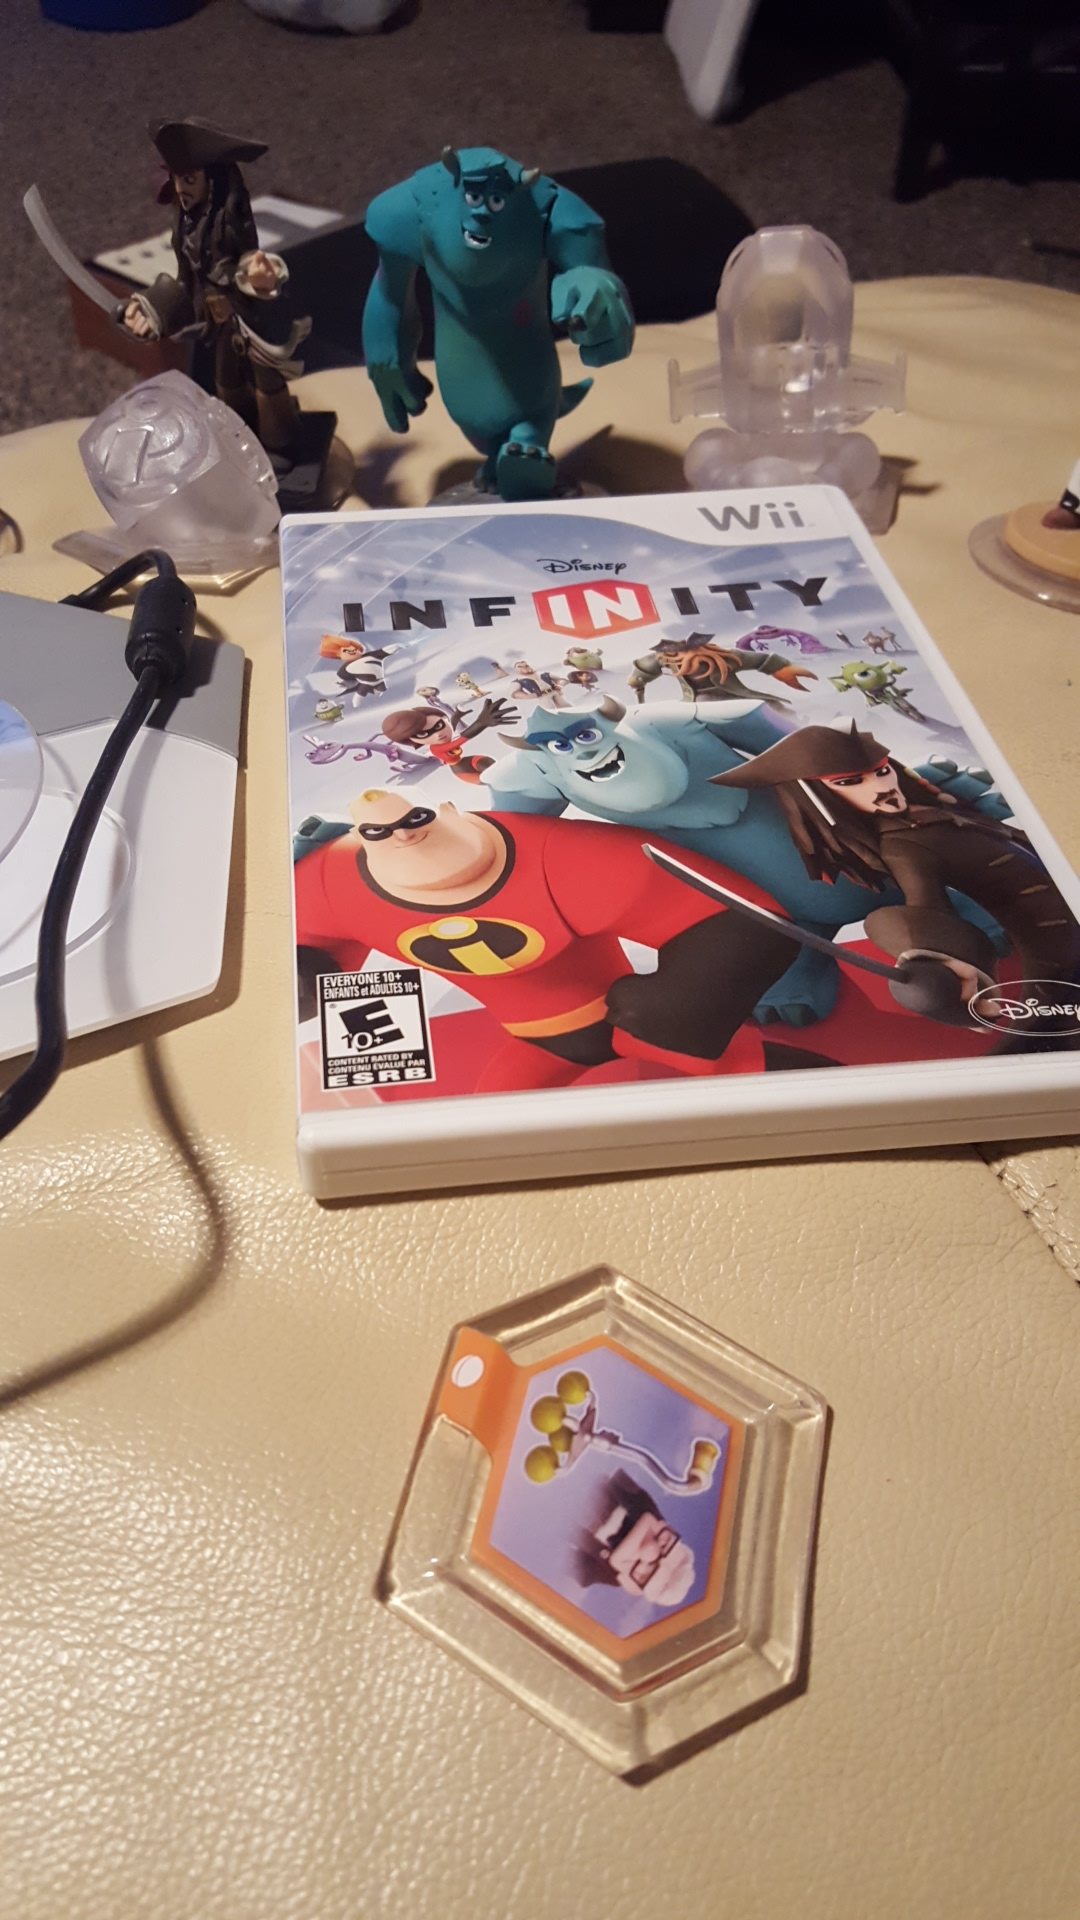 Disney infinity game and characters